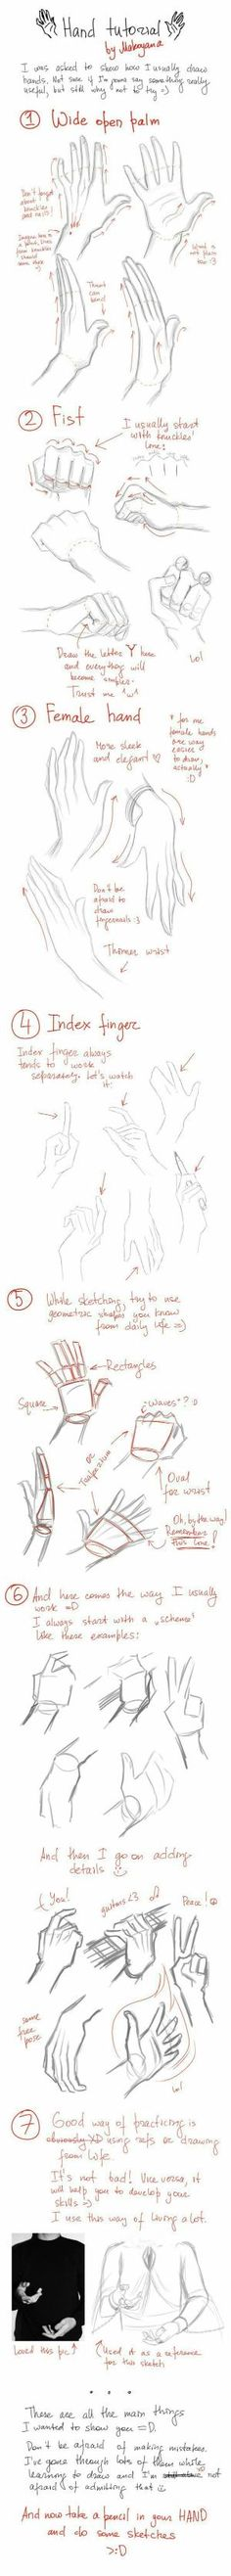 Hand Tutorial, text, hands; How to Draw Manga/Anime by Maiden11976